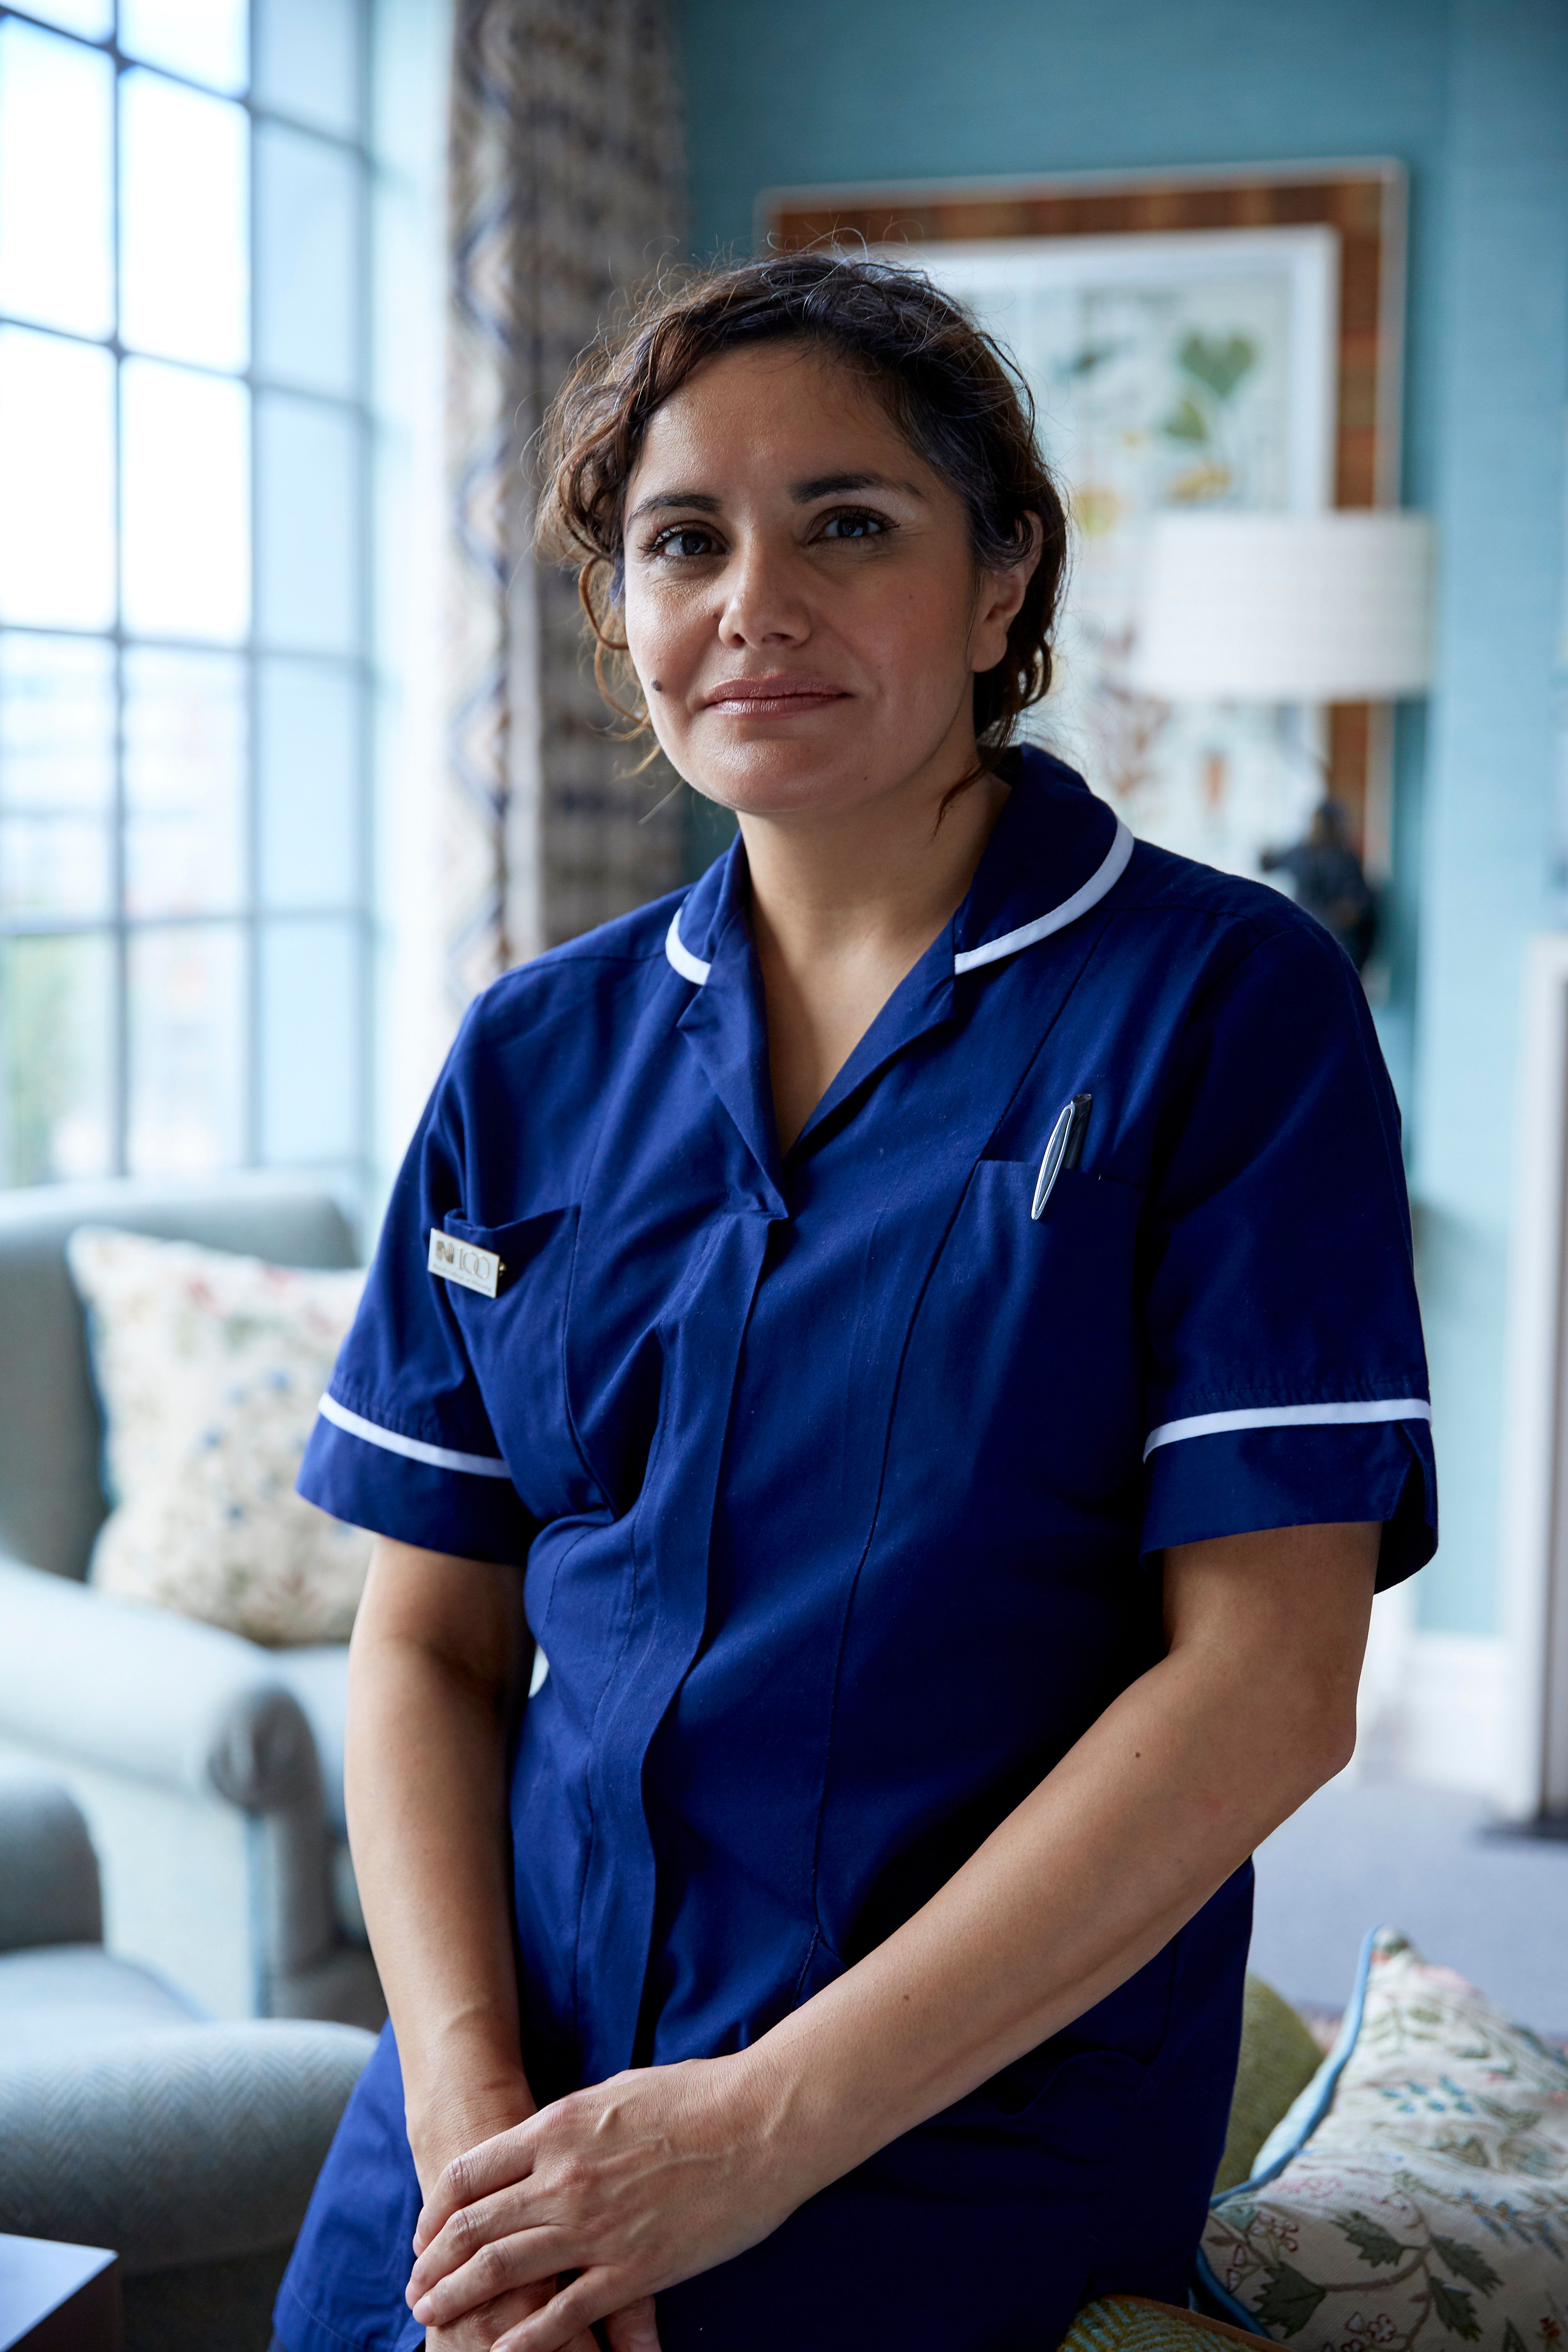 'There's A Unique Feel To It': A Night In The Life Of A Midwife At